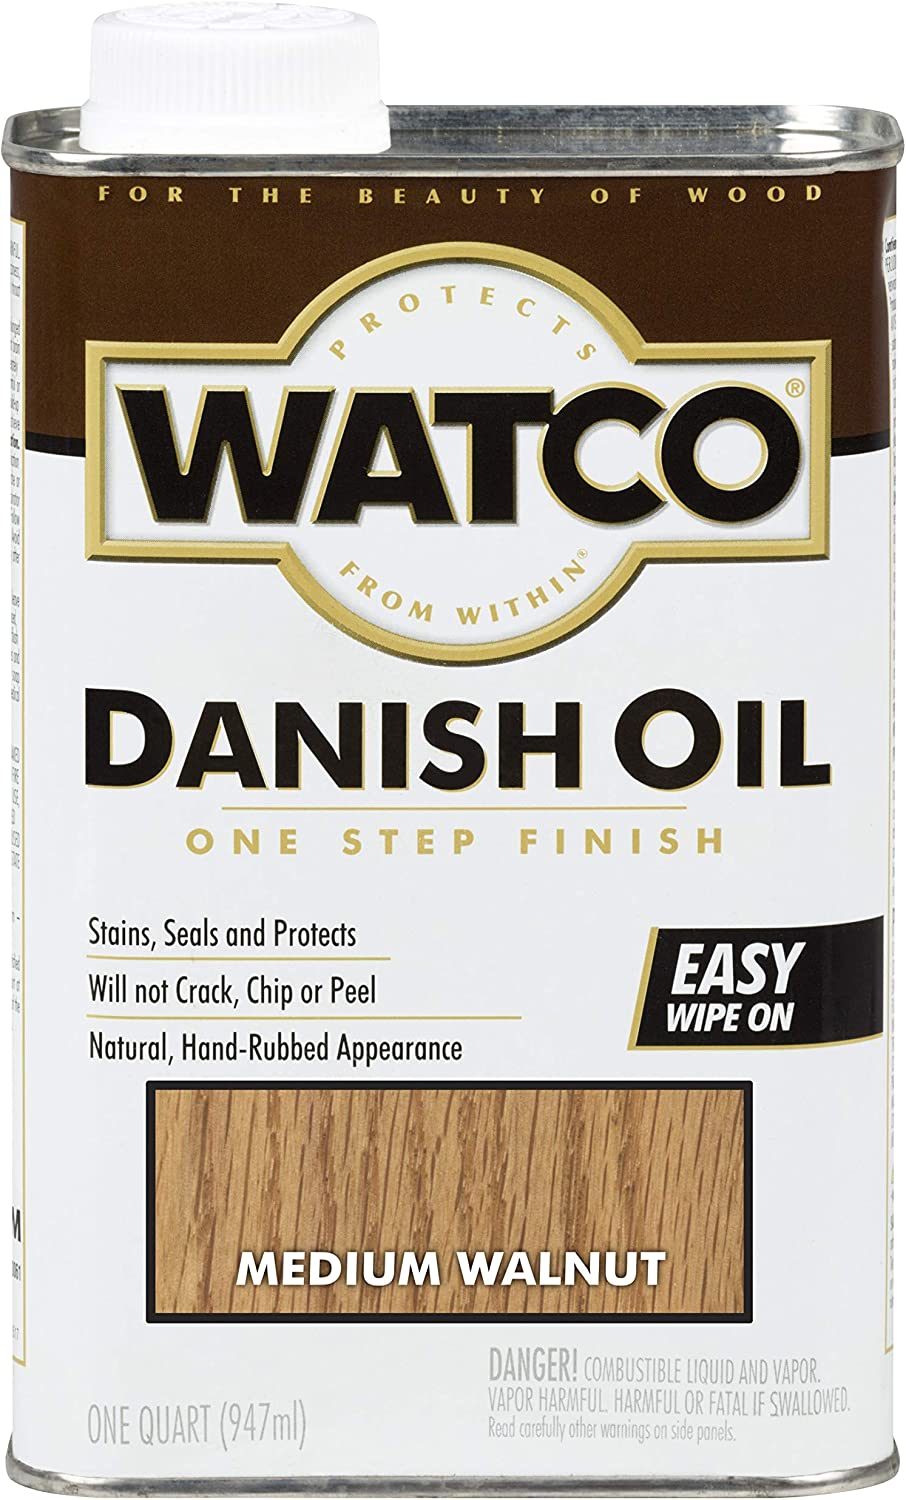 Watco 242223 Danish Oil Wood Finish, Low VOC, Quart, Medium Walnut